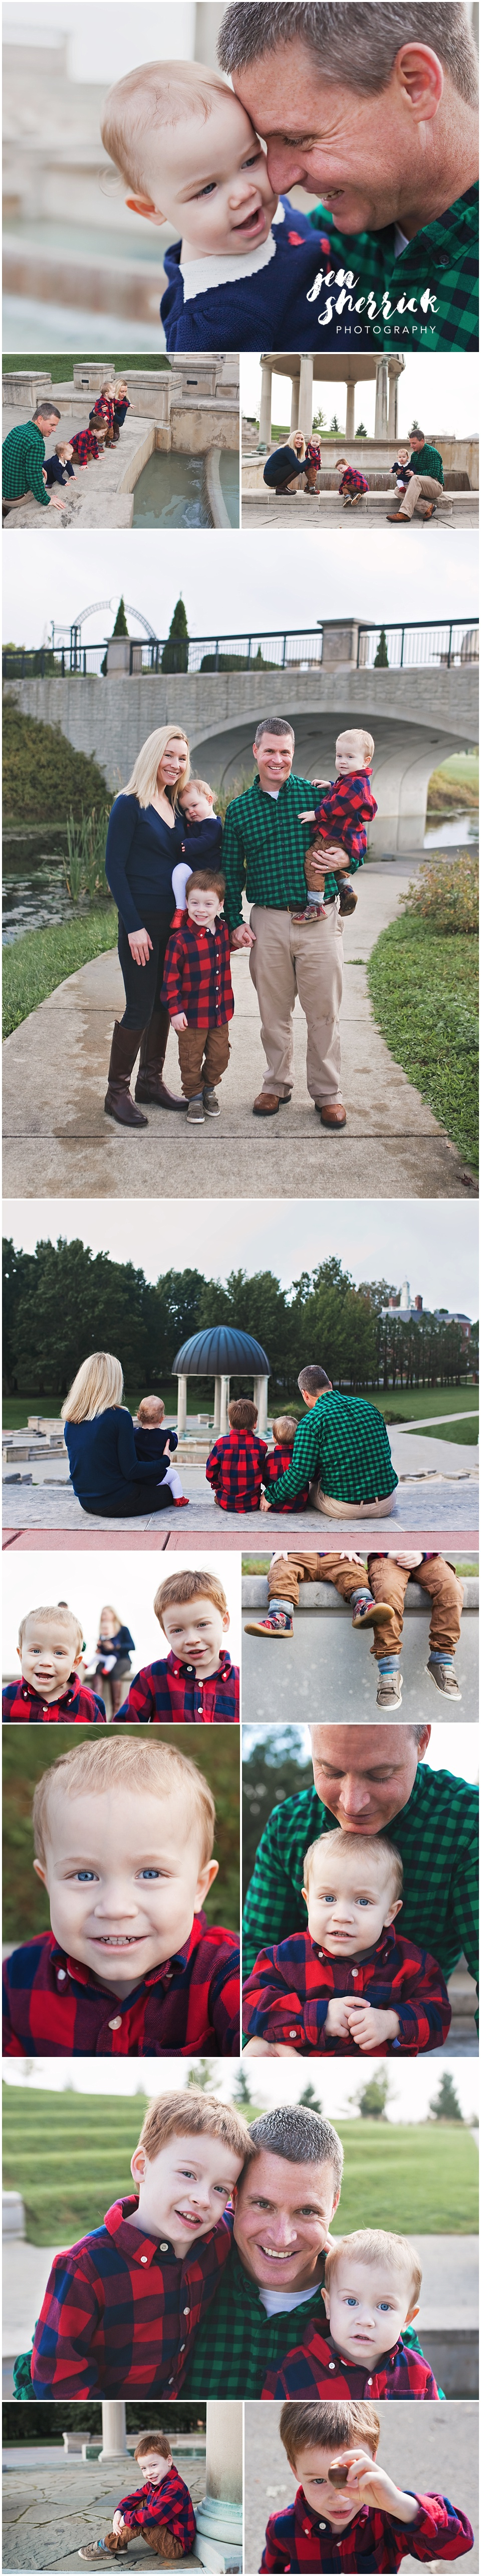 collage of fall family photos continued